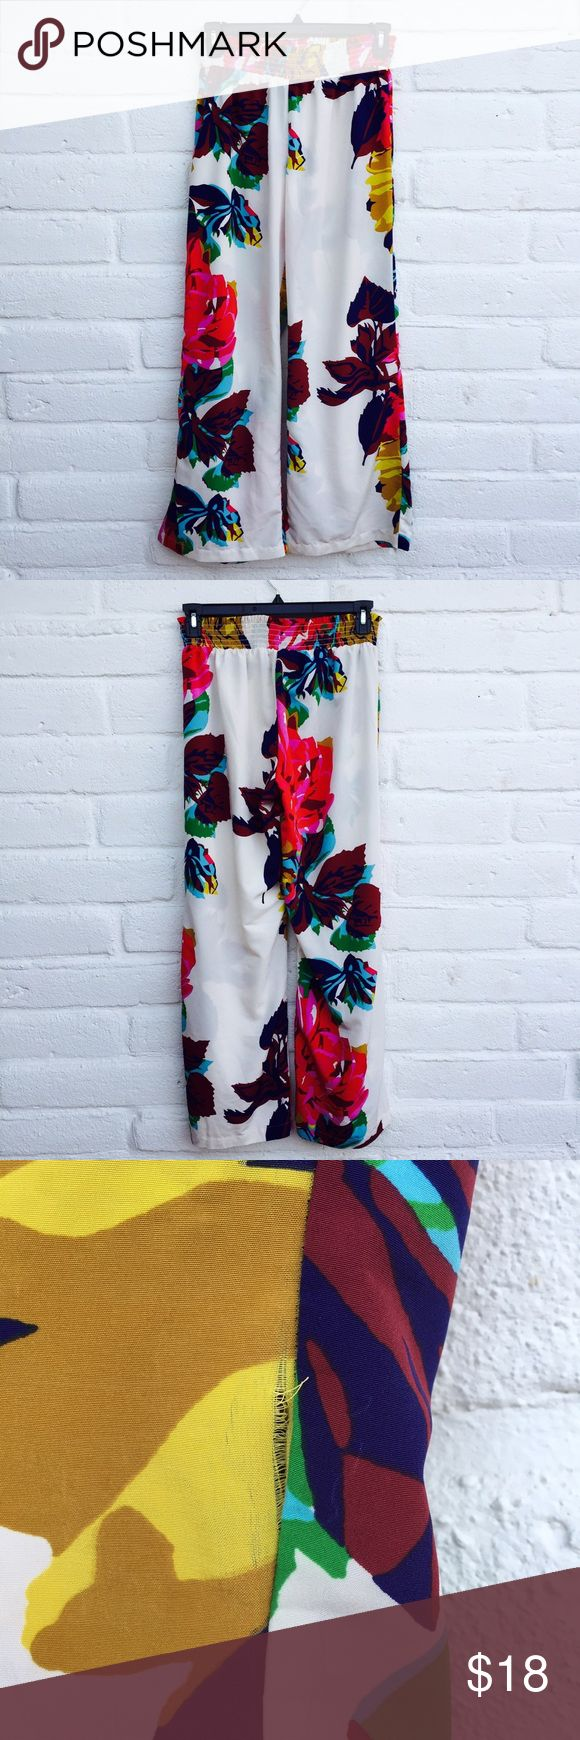 Anthropologie Pinkerton Wide Leg Palazzo Pants Pinkerton brand sold through Anthropologie. Wide leg, palazzo pants with elastic waistband. These are super comfortable and could even be suitable for maternity because of the stretchy waist band. White with a bright Floral pattern. Silky and soft, 100% polyester. There are two spots where the side hem is coming loose, I did not even notice this flaw while wearing because it's in a busy location and pants are loose fitting. Could easily be…